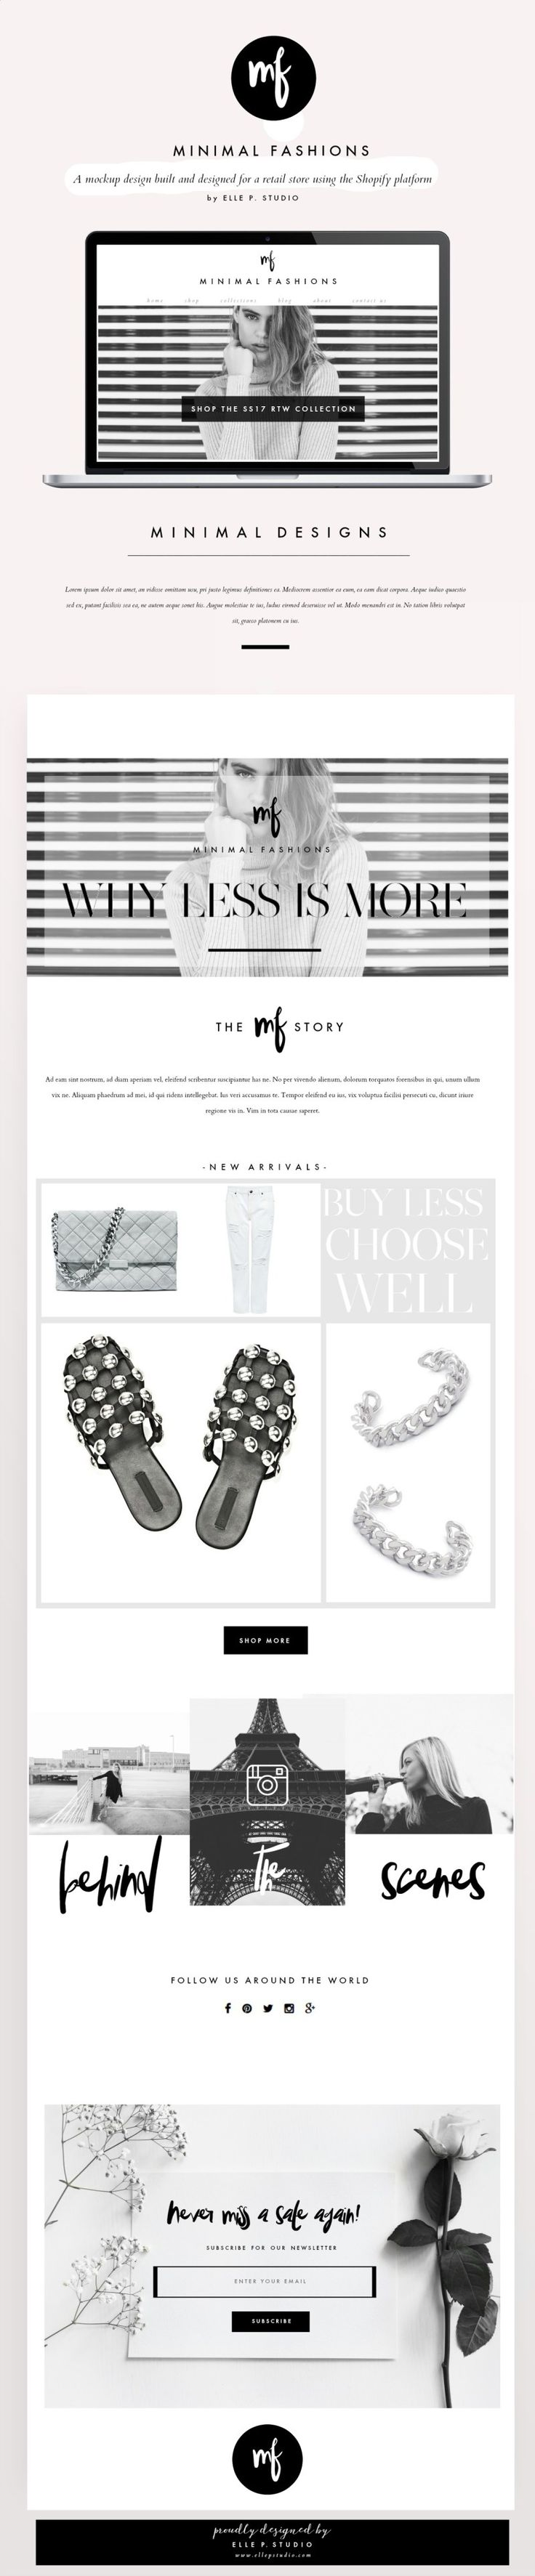 Shopify Fashion Retail Website Design by Elle P. Studio